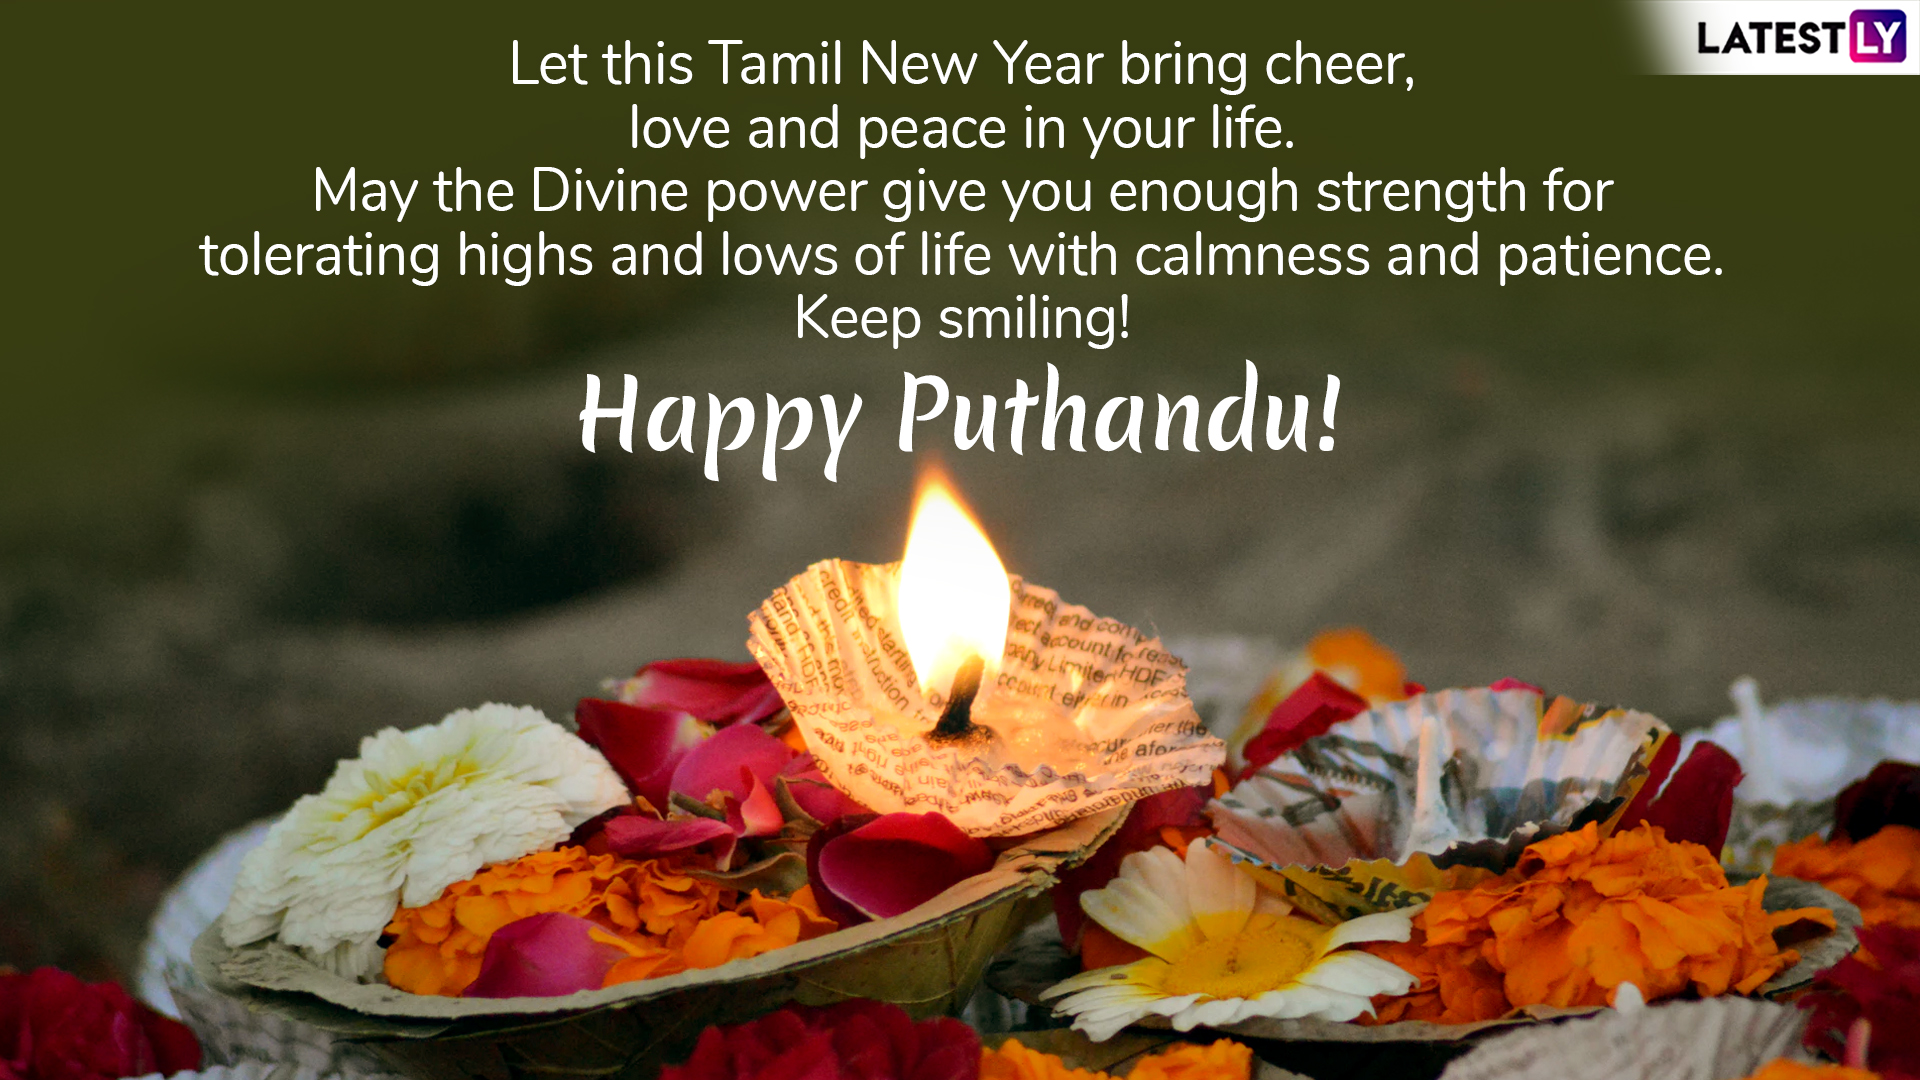 Puthandu Vazthukal 2019 Greetings In Tamil Best Whatsapp Stickers Tamil New Year Wishes Gif Image Messages Sms And Quotes To Wish Happy Puthandu Latestly